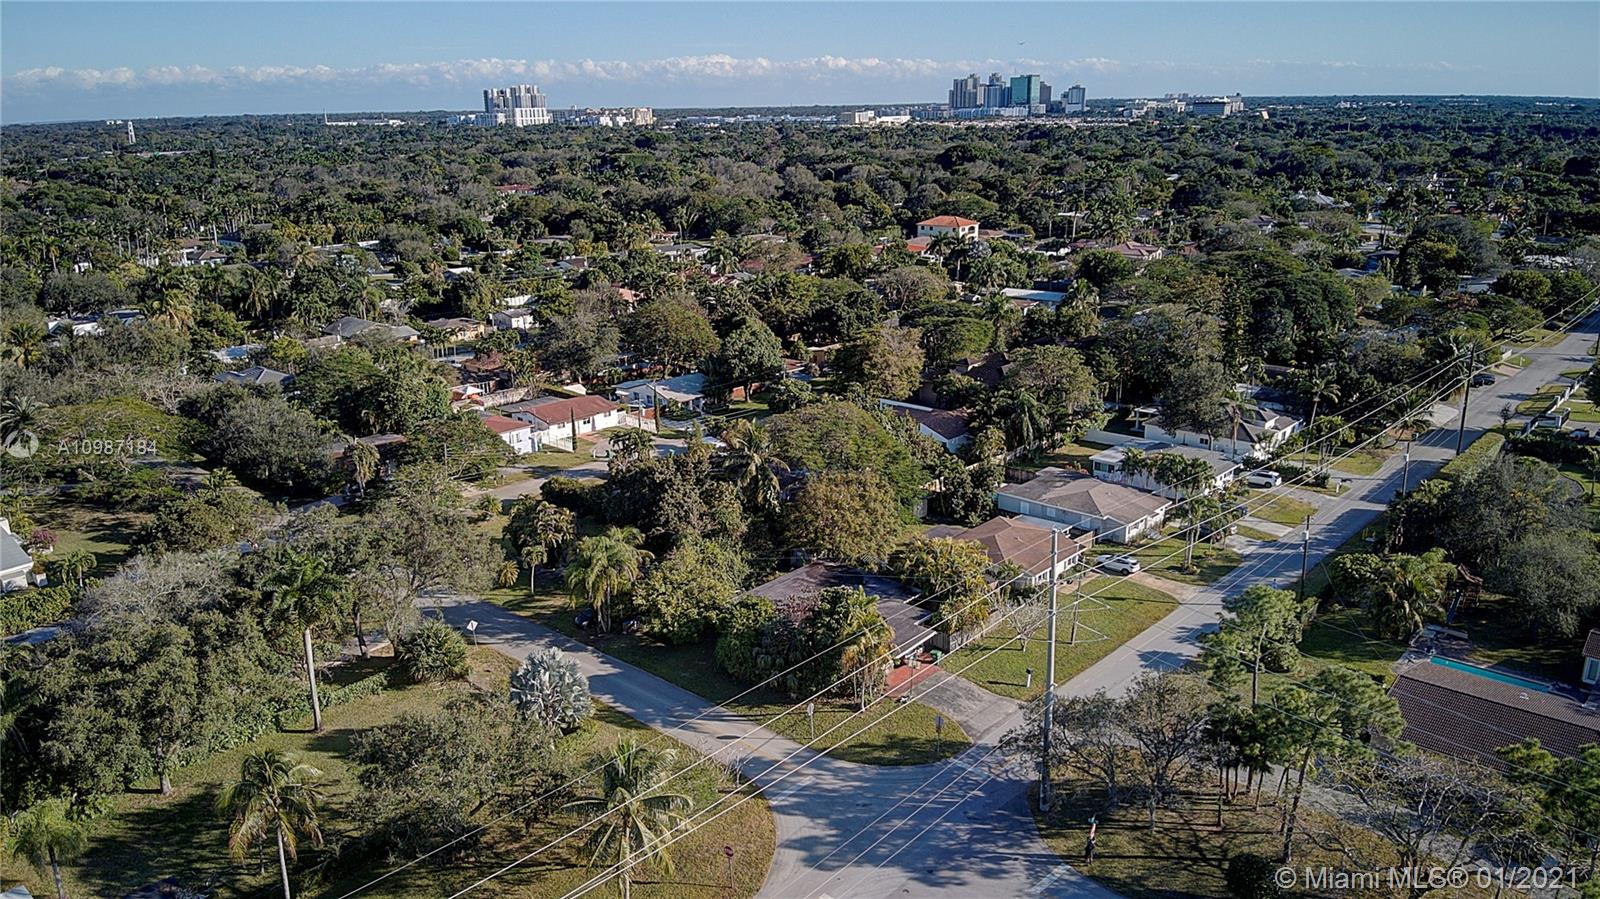 Investors dream...Seller extremely motivated! Renovate or Rebuild. Million dollar homes being constructed on this street. Excellent schools.  Now accepting best and highest offers! Property will not last.